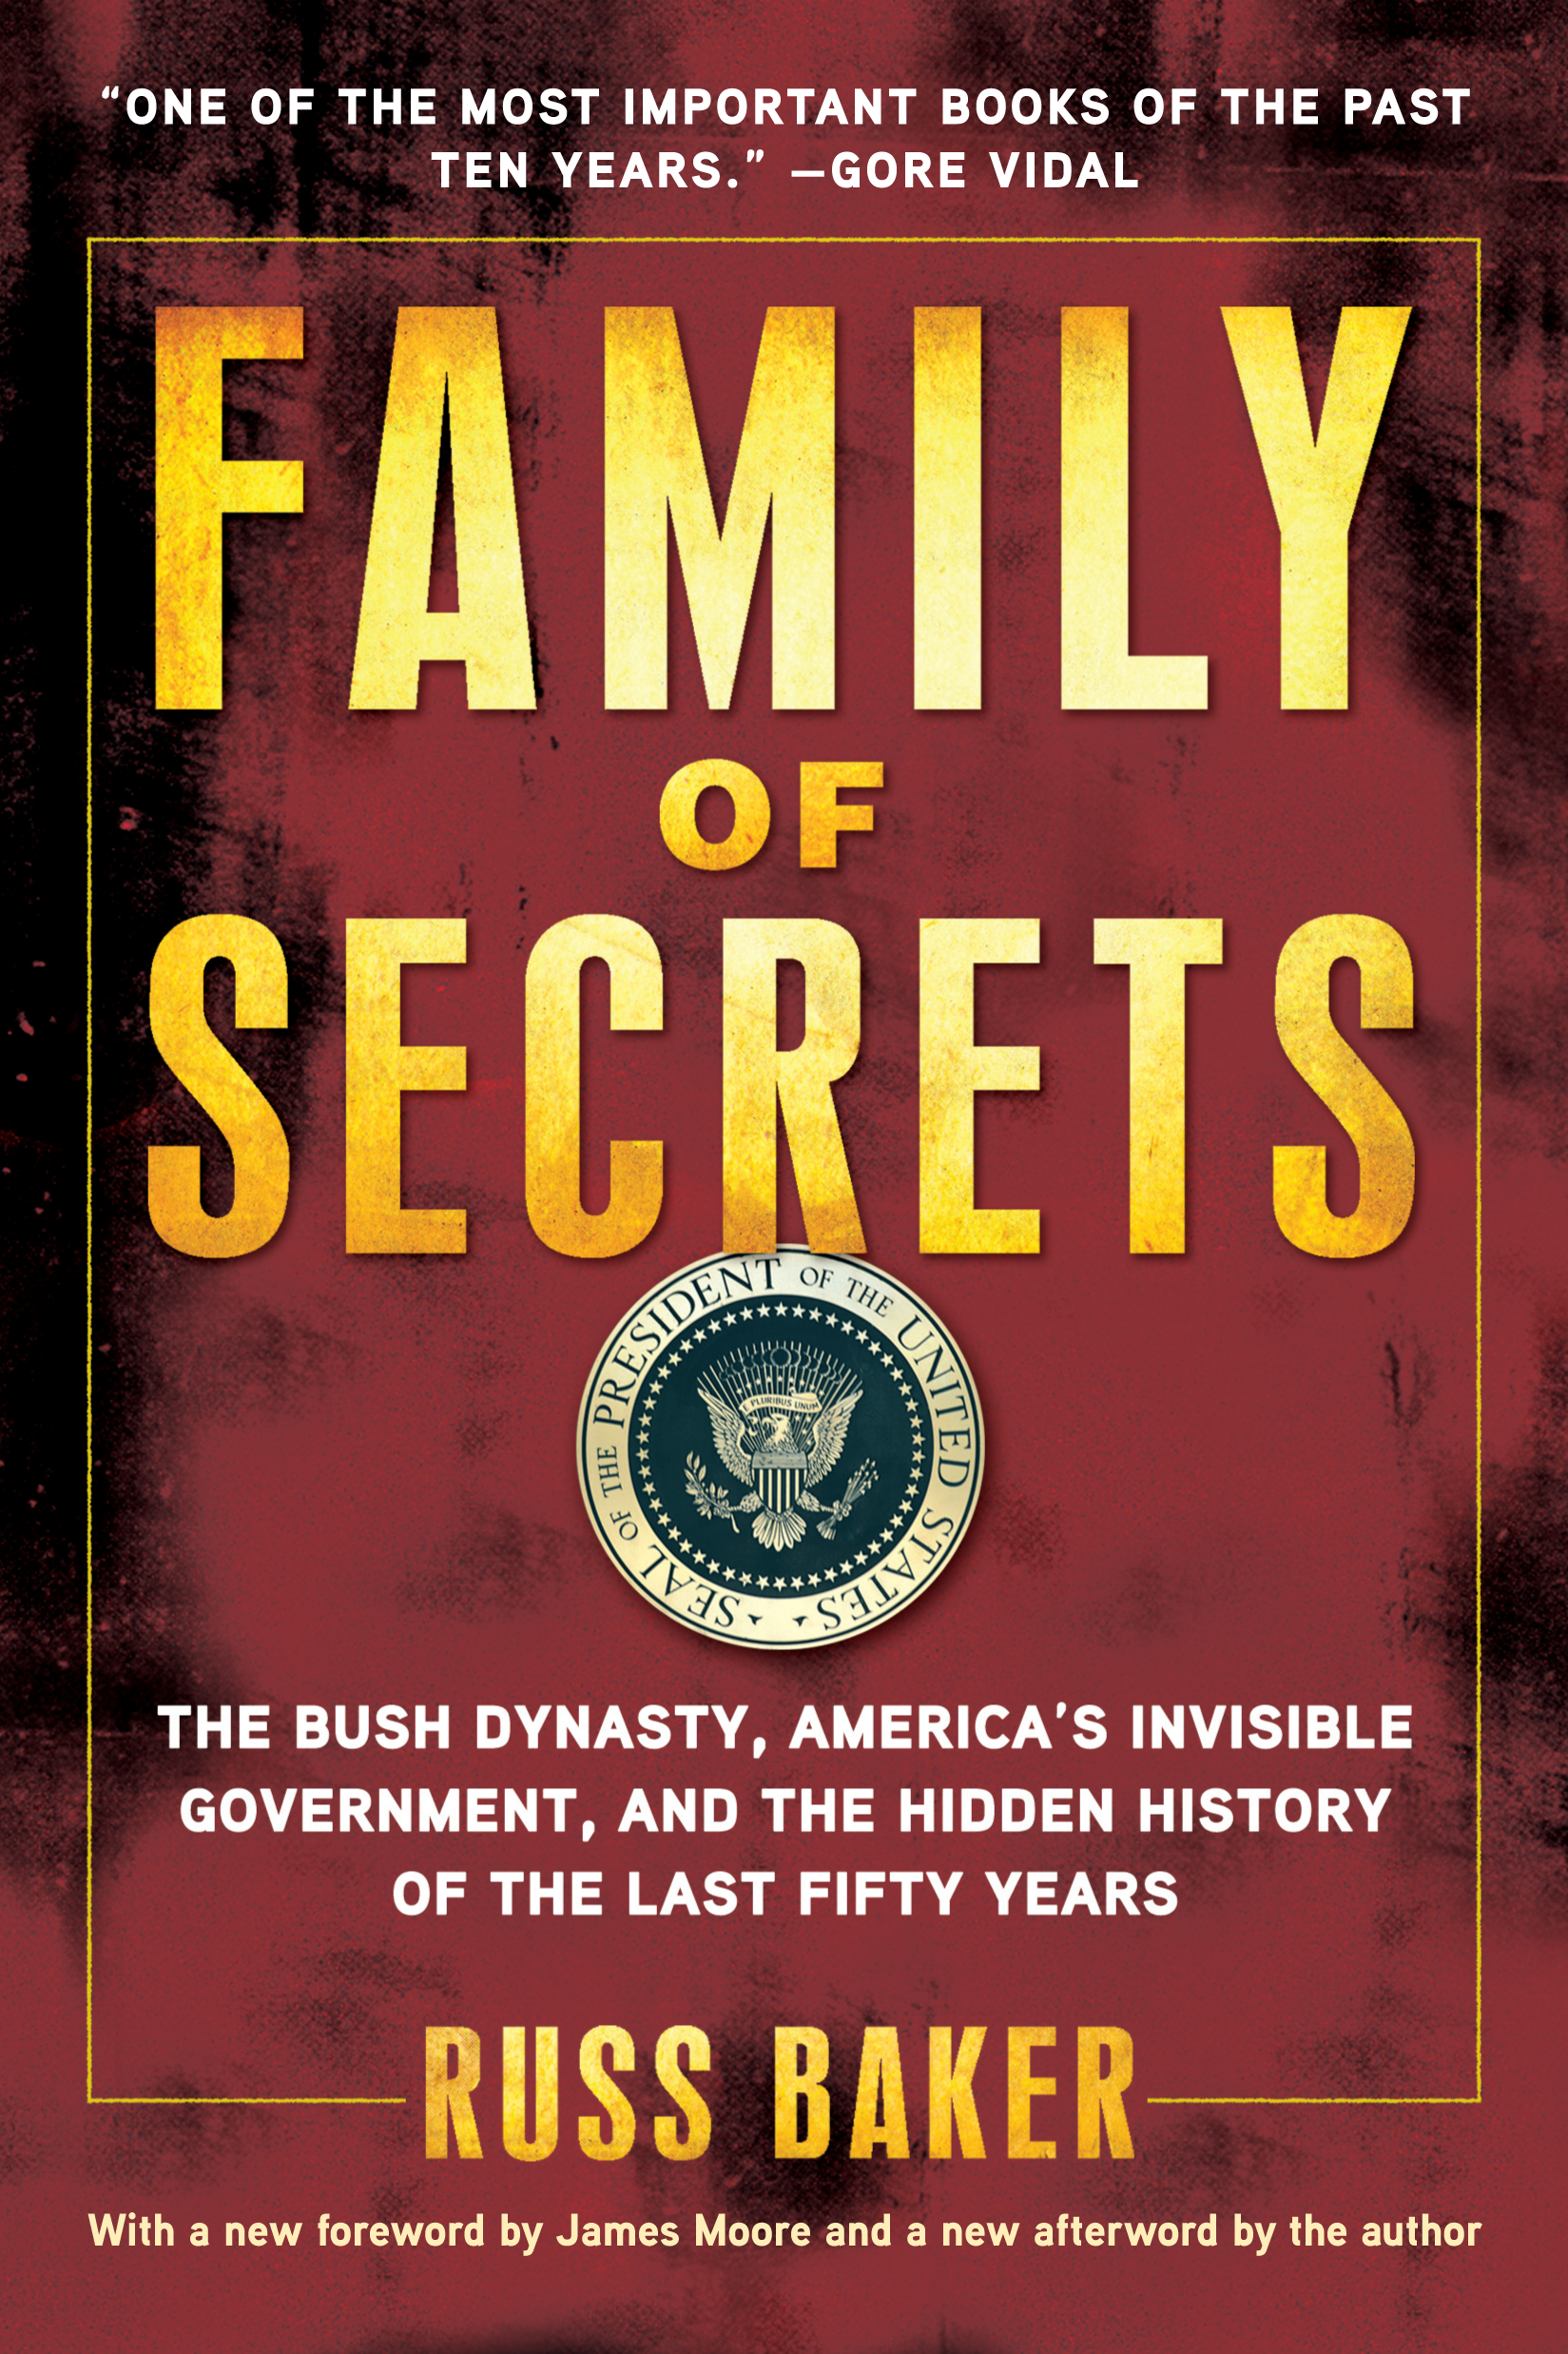 Family of Secrets: The Bush Dynasty, America's Invisible Government, and the Hidden History of the Last Fifty Years By: Russ Baker